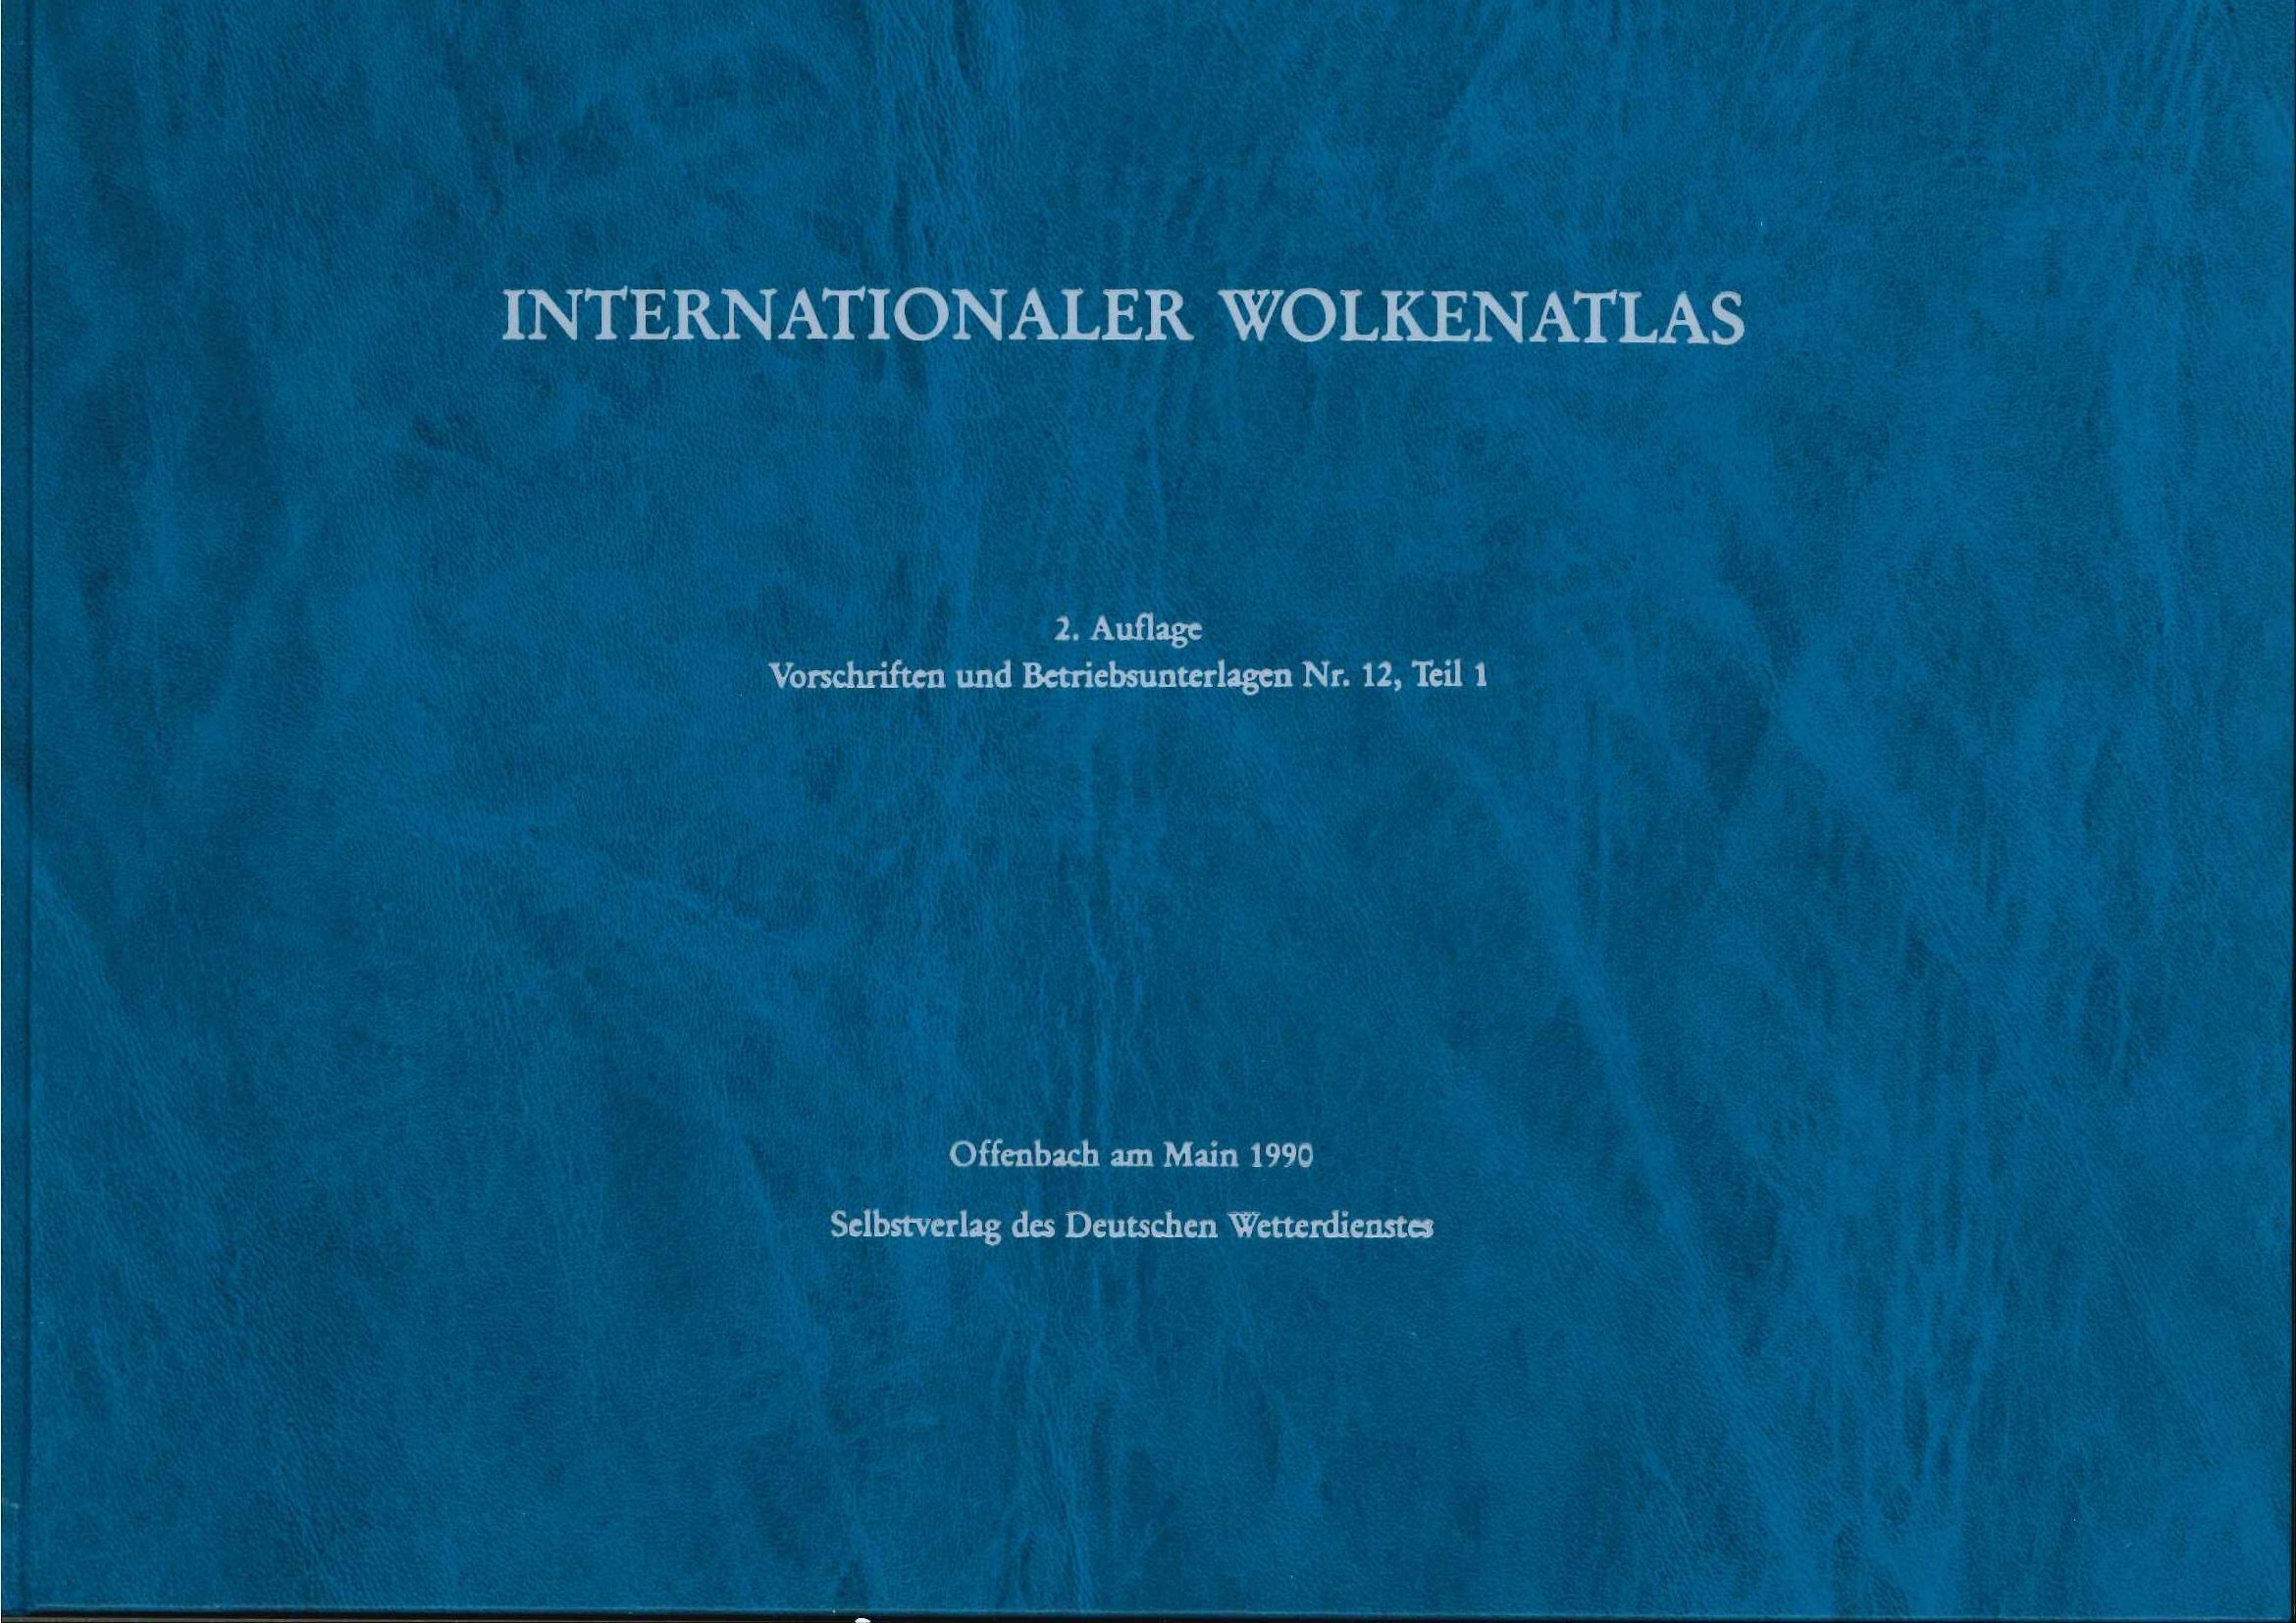 Internationaler Wolkenatlas (VuB Nr. 12, Teil I)